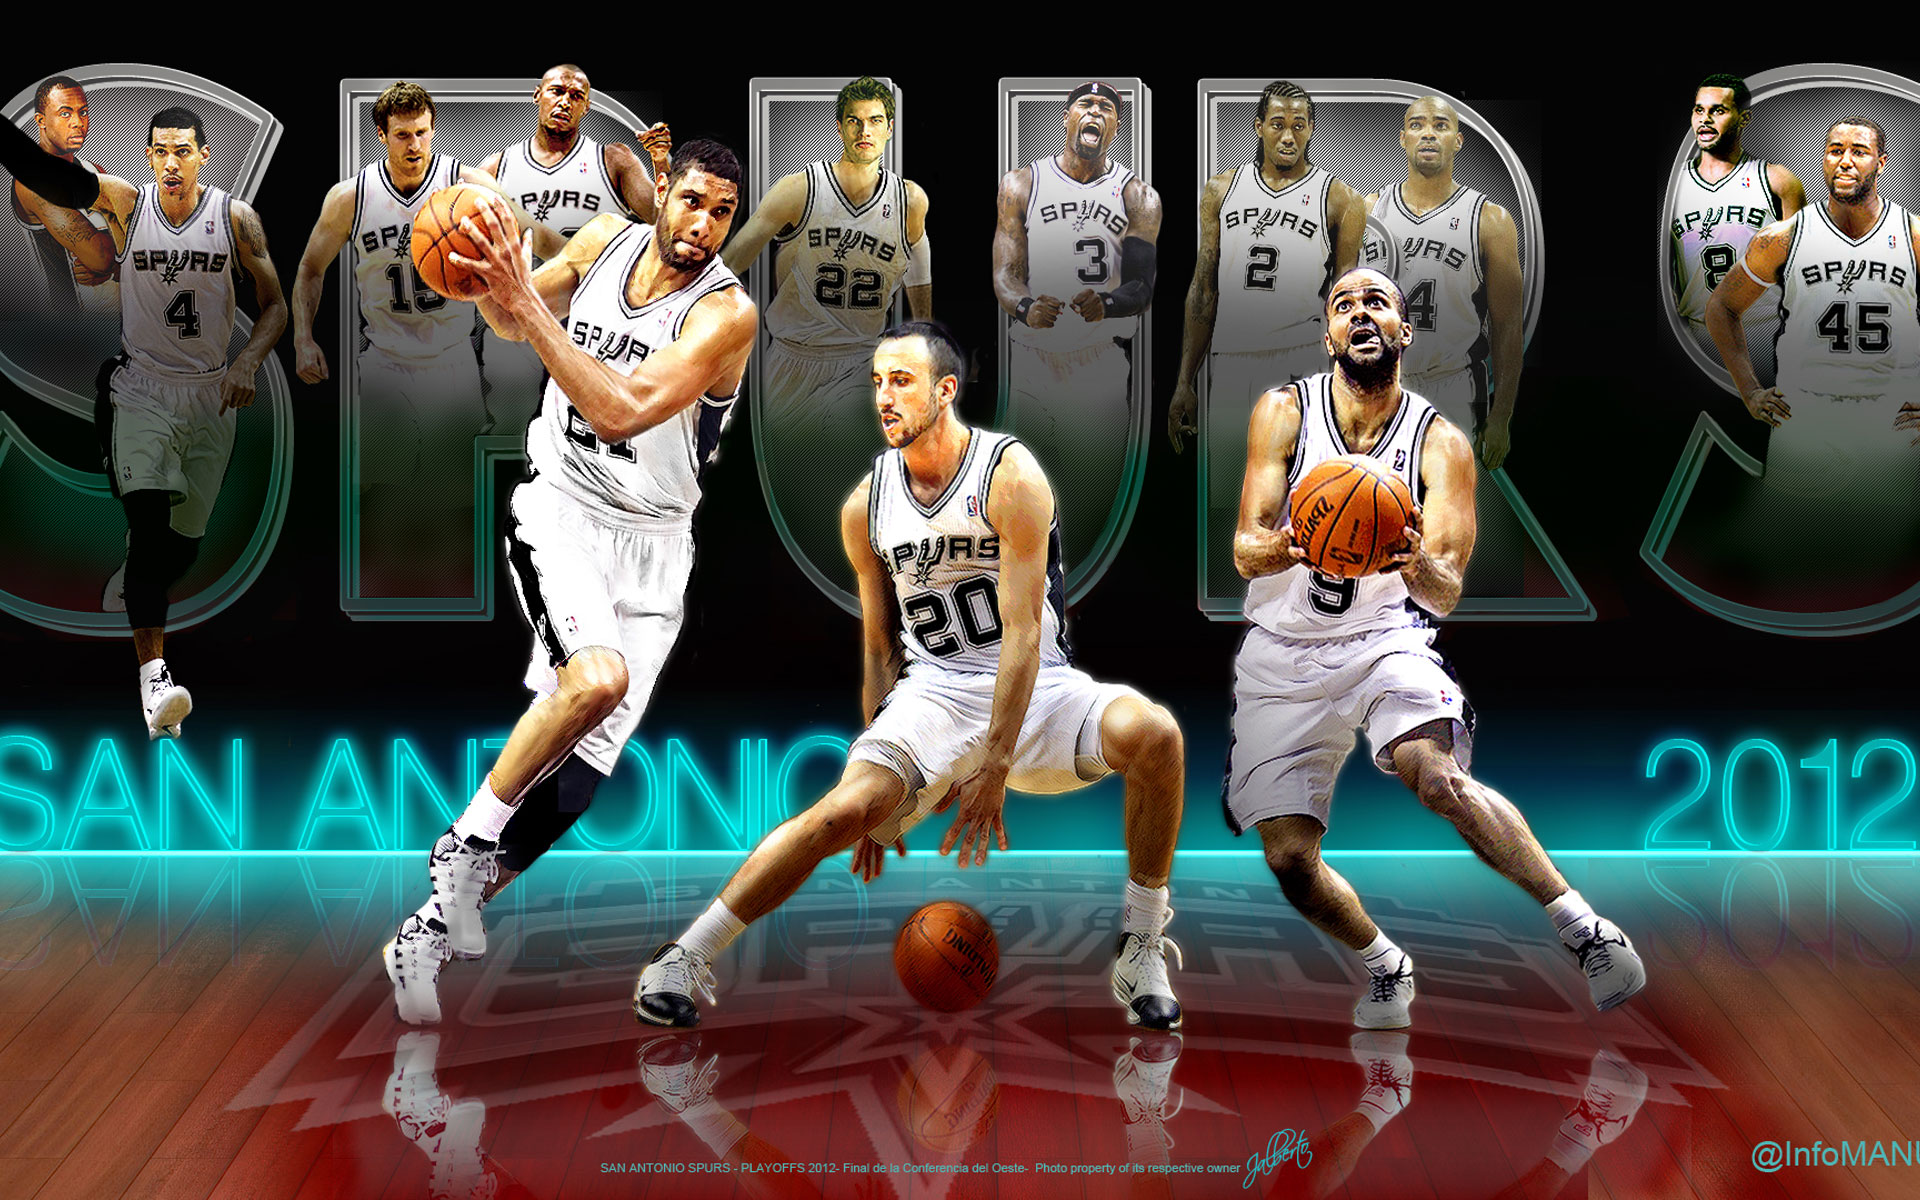 Wallpapers San Antonio Spurs ImageBankbiz 1920x1200